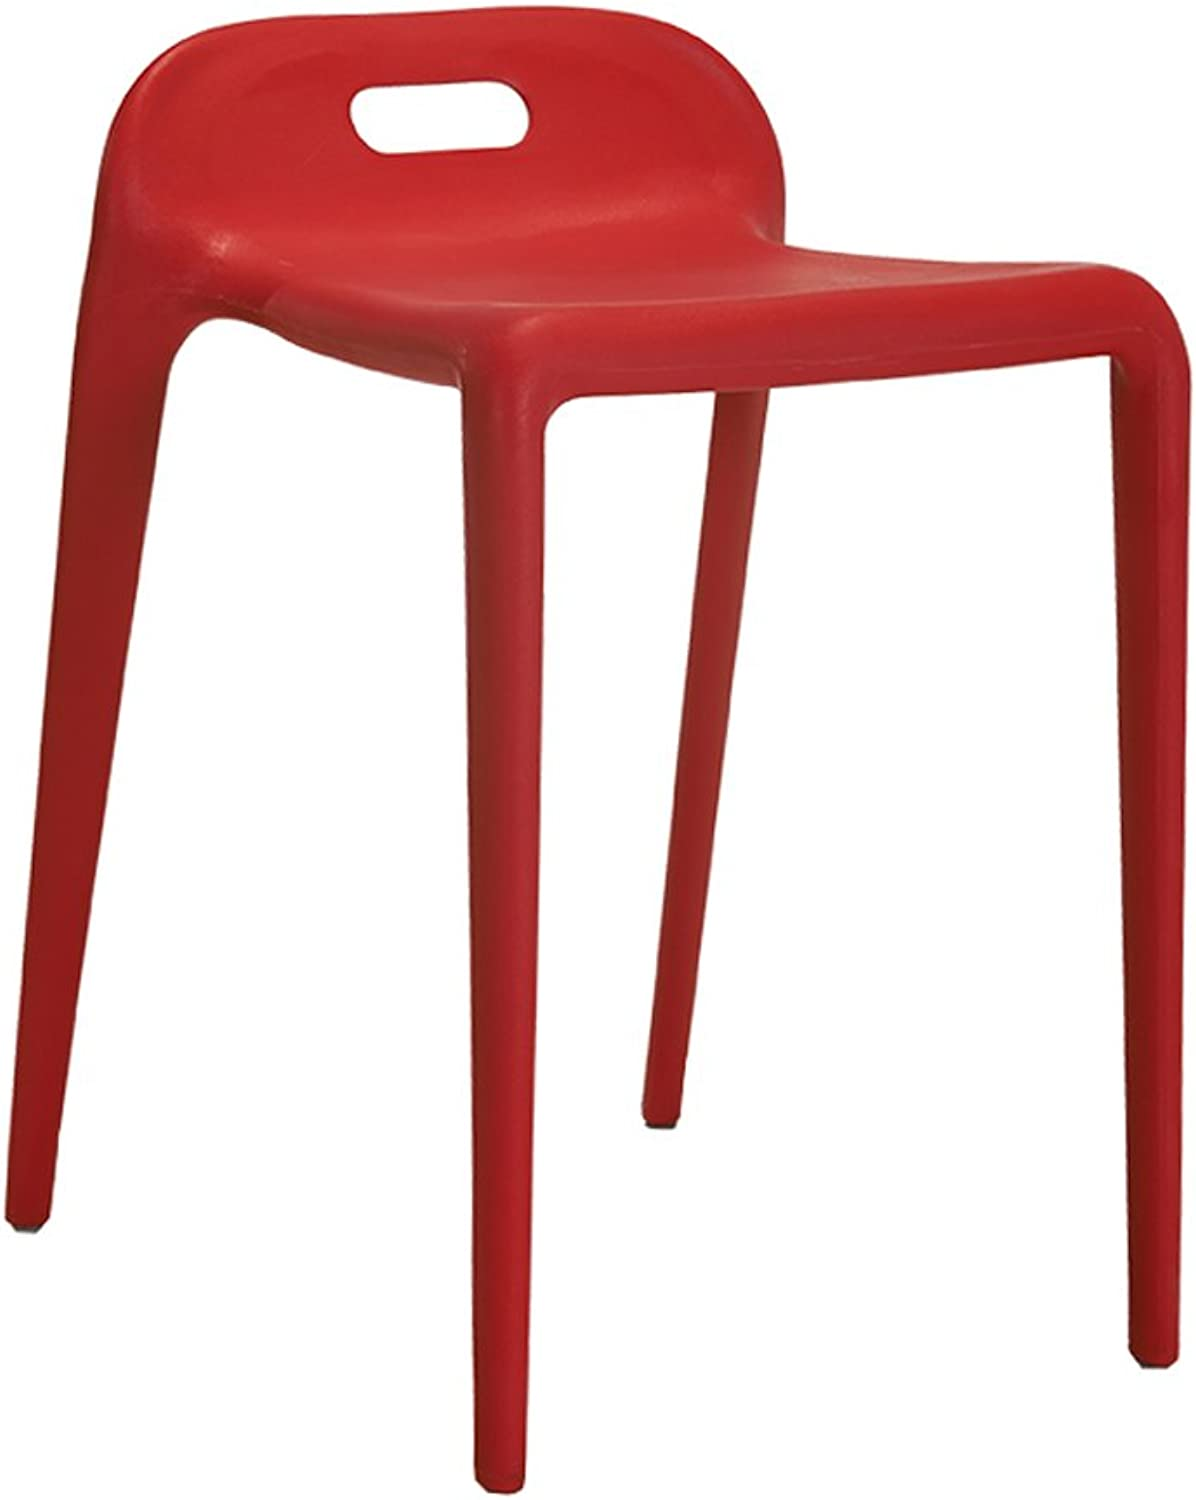 Creative Modern Dining Chair Simple Plastic Chair Reception Chair Home Stool Restaurant Rest Stool (color   Red)